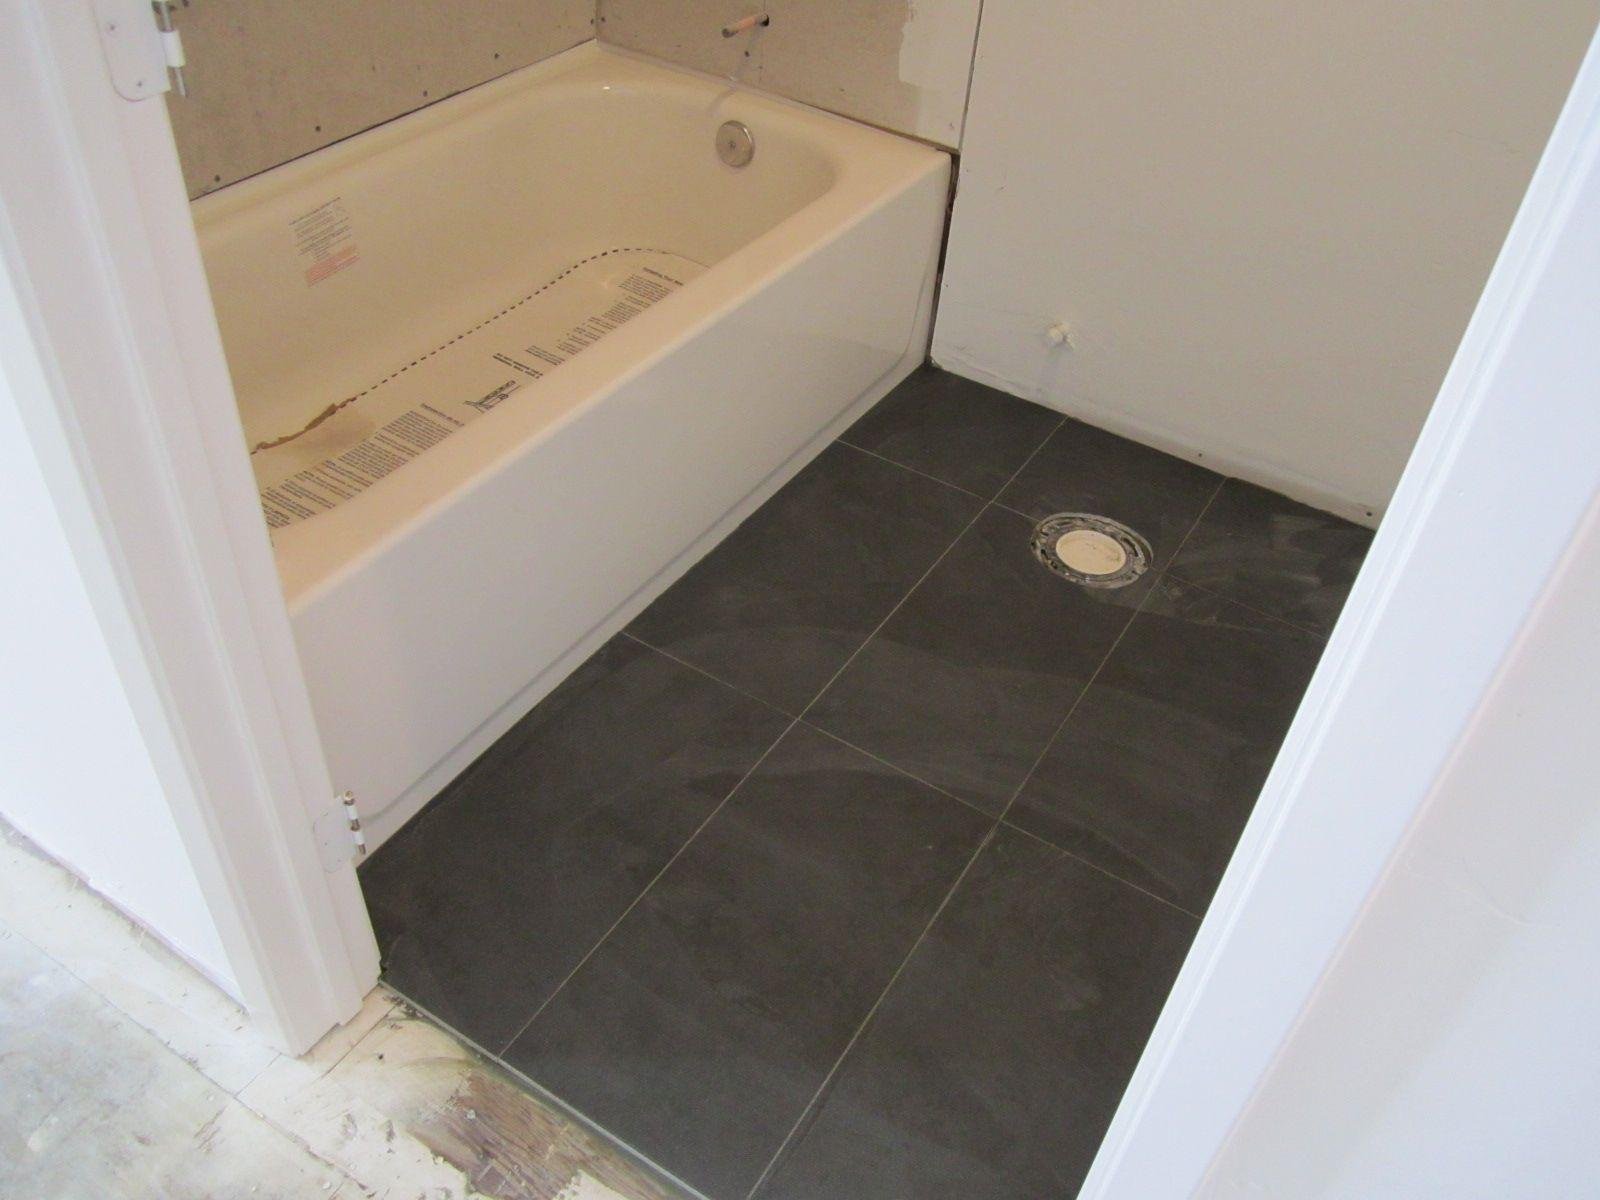 12x24 Tile In A Small Bathroom Small Bathroom Tiles Modern